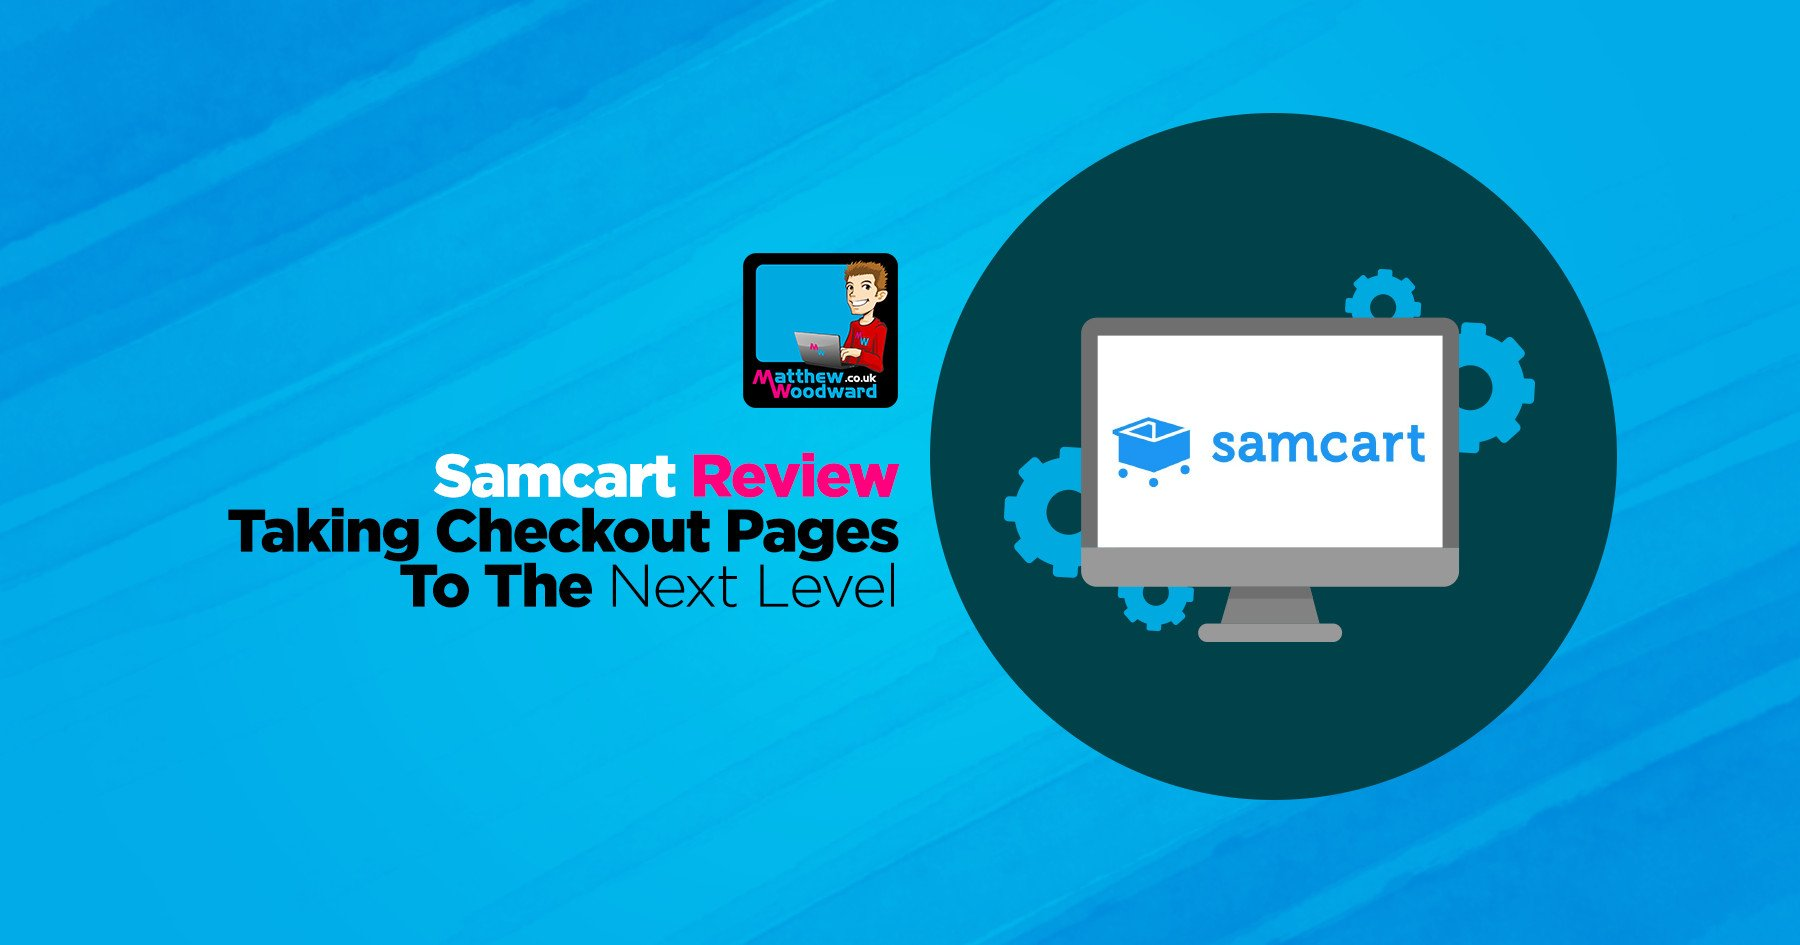 Samcart Review Reddit